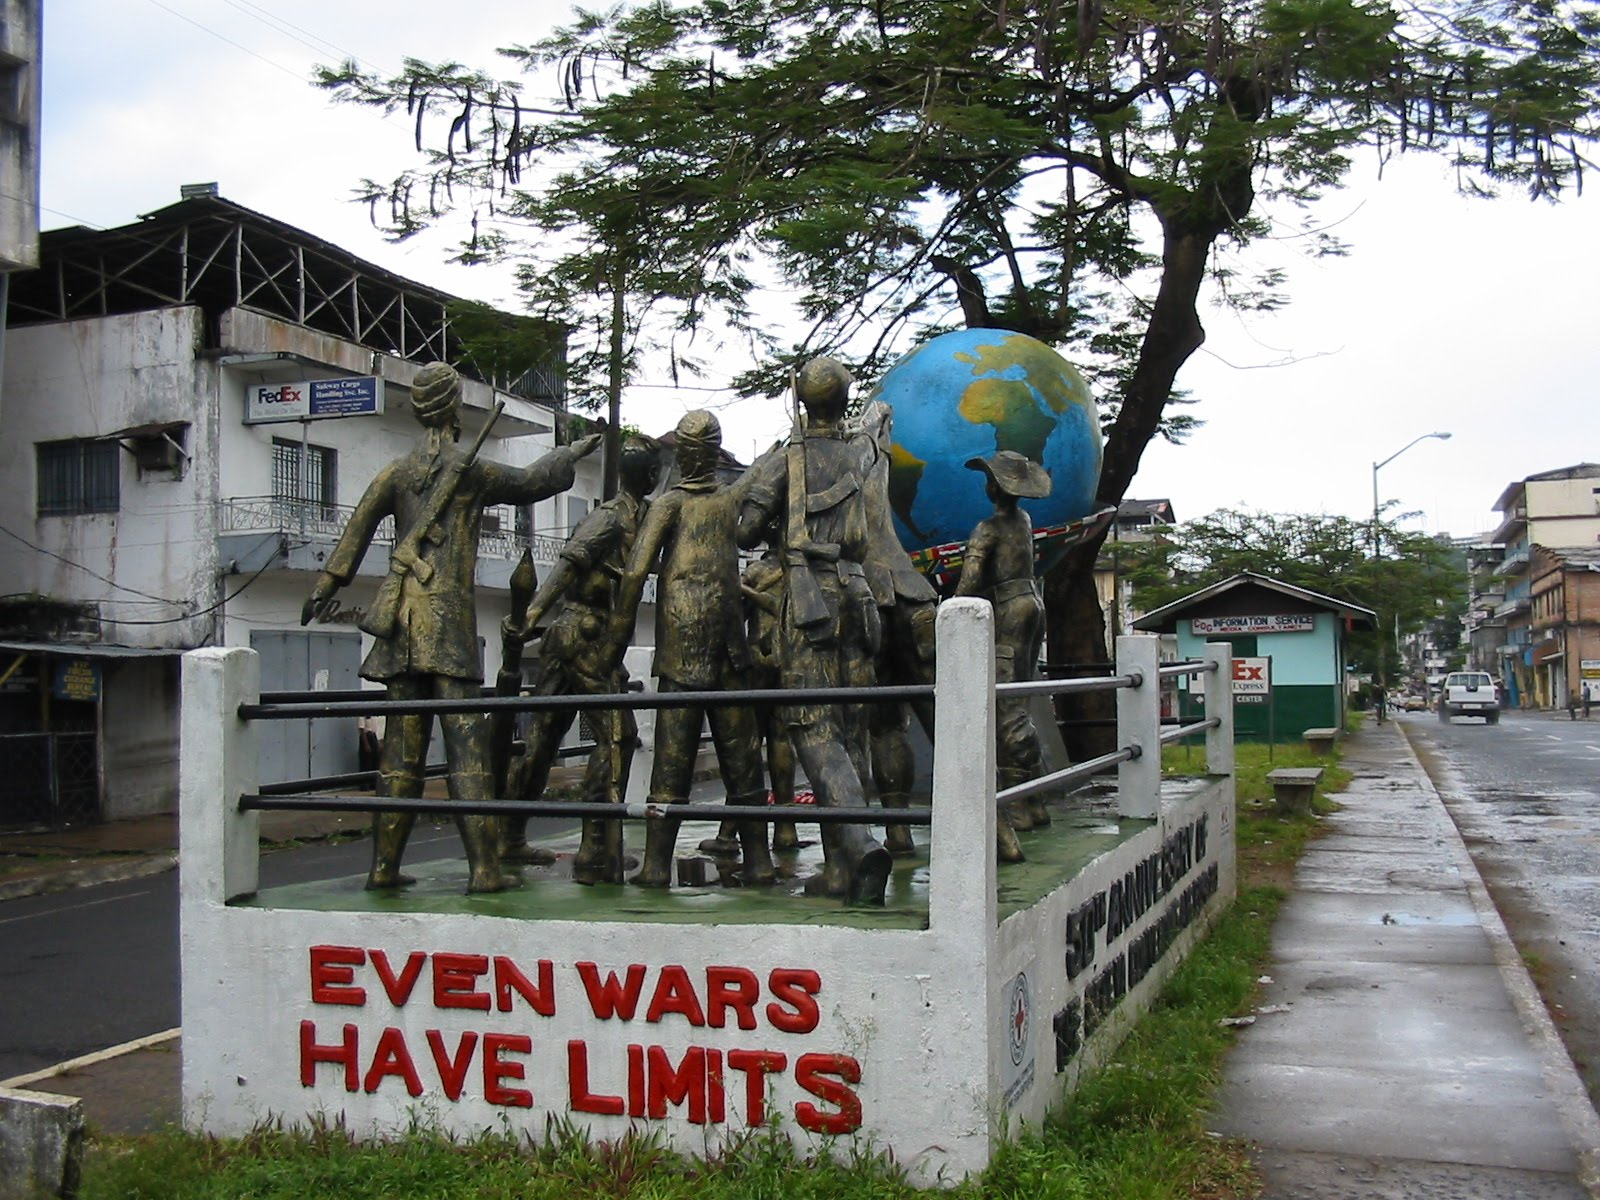 Liberia Mission was founded right after Liberia's long civil war, which ended in 2003.